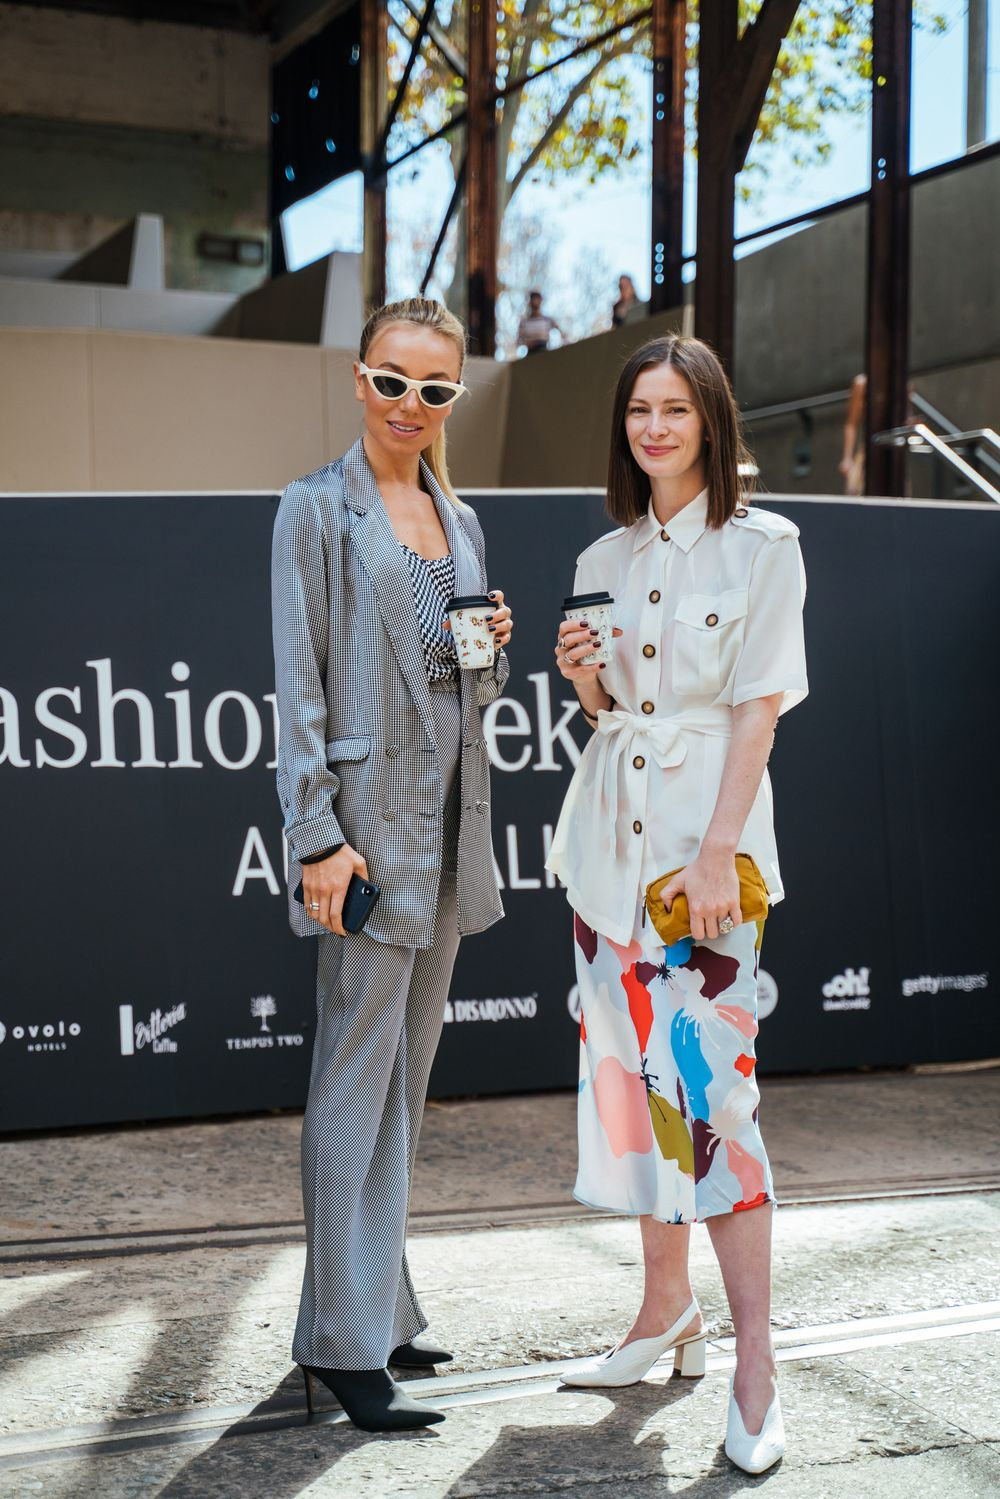 Sydney fashion week by Bill Chen photography